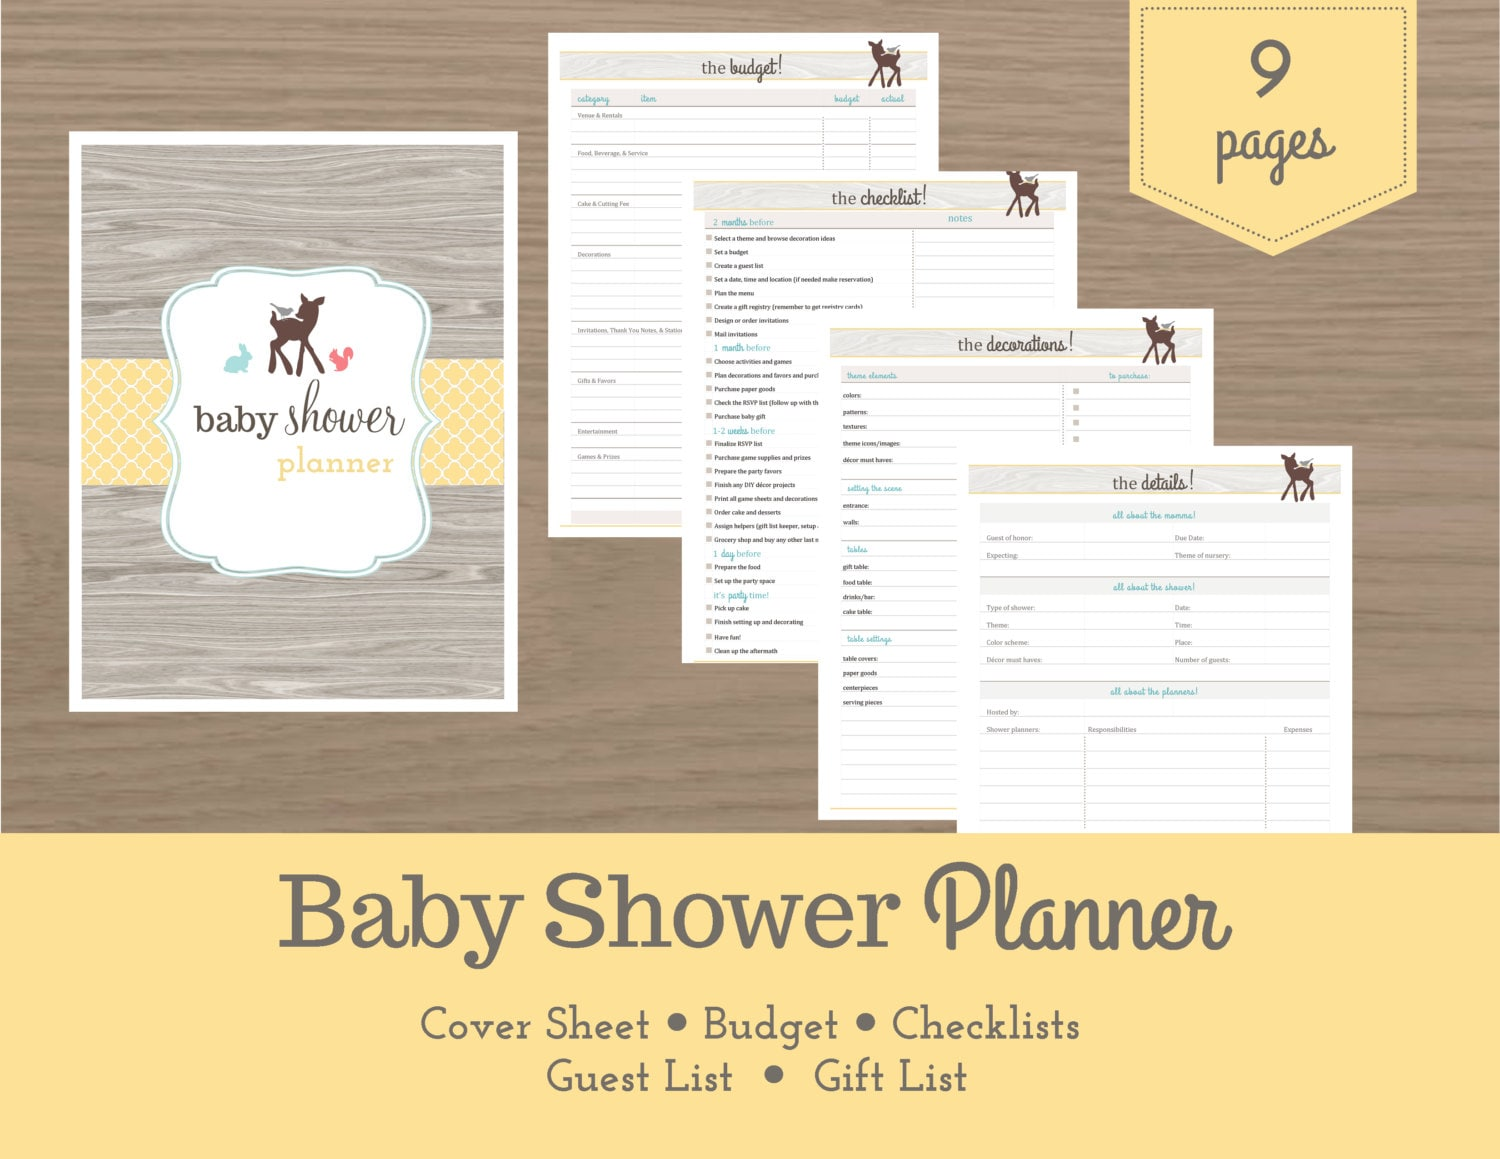 baby shower planner baby shower checklist pregnancy